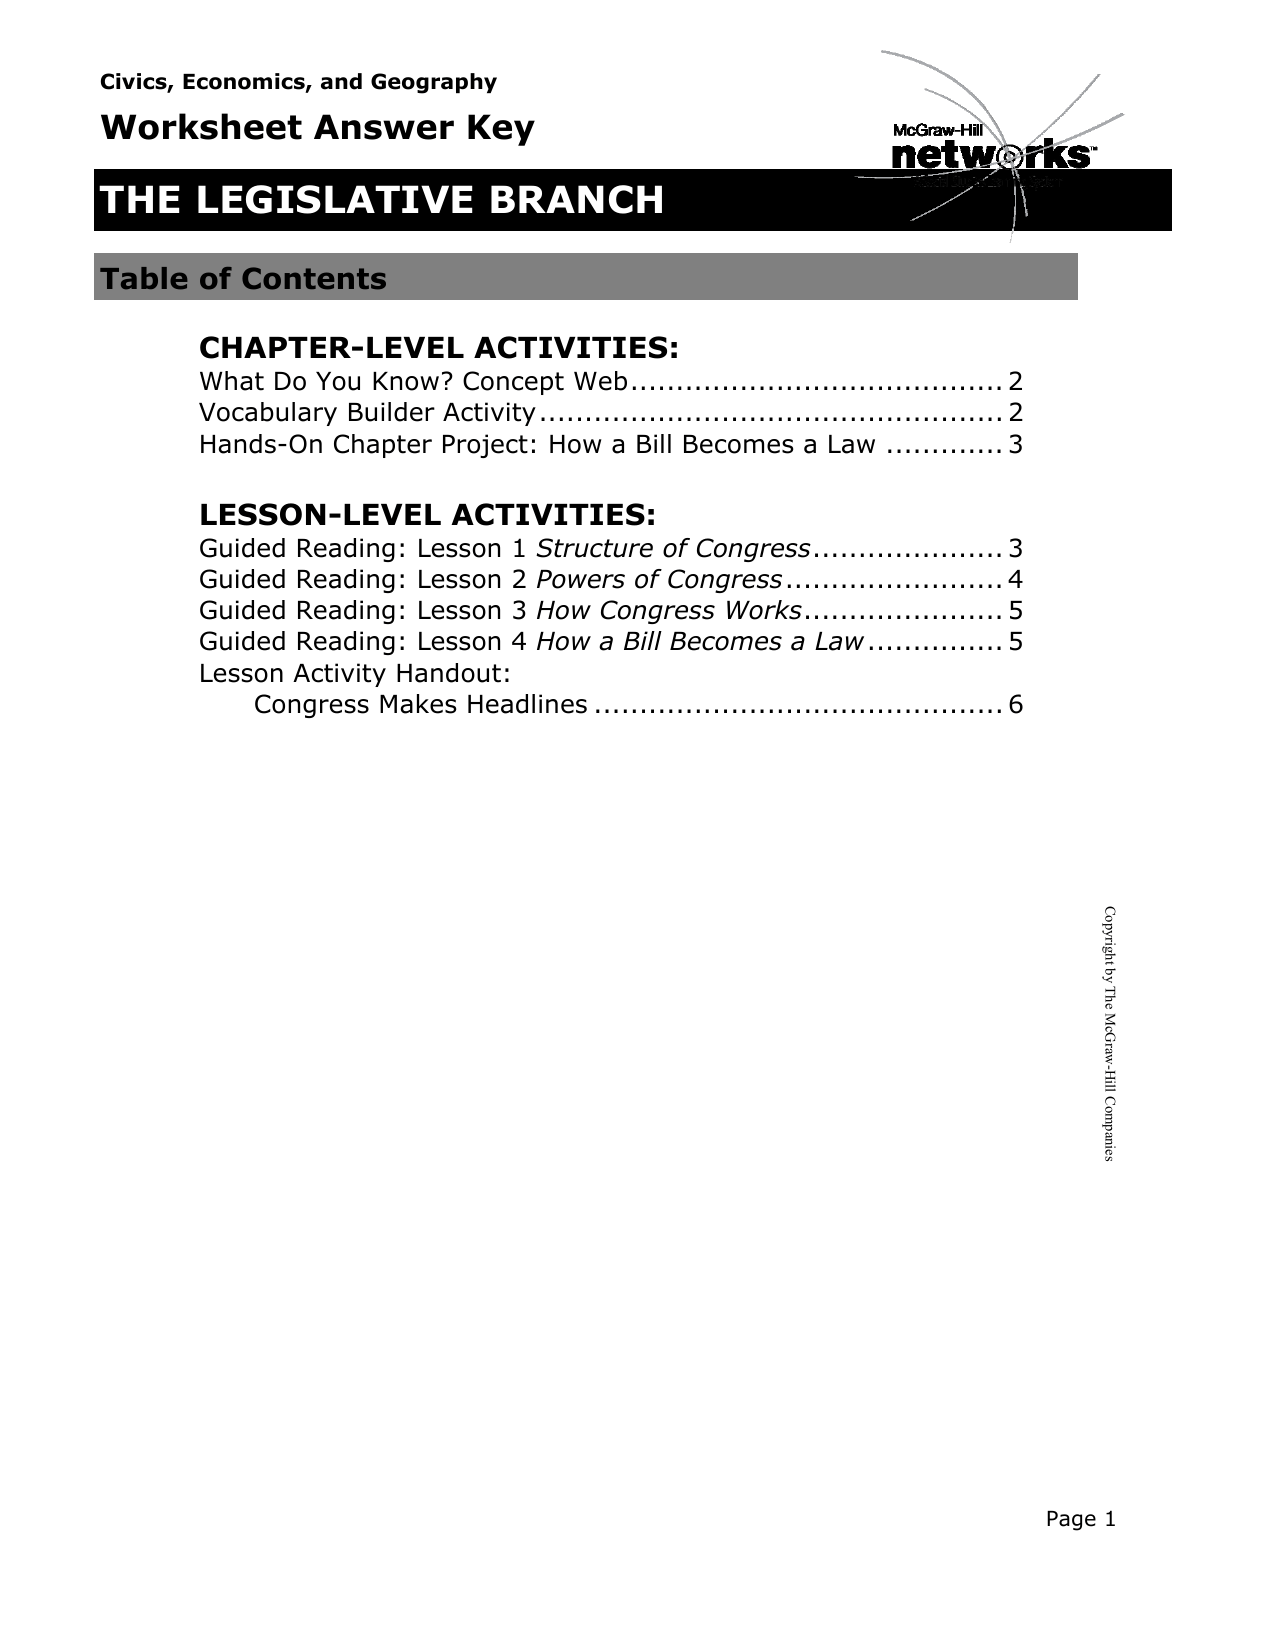 Judicial Branch Worksheet Printable